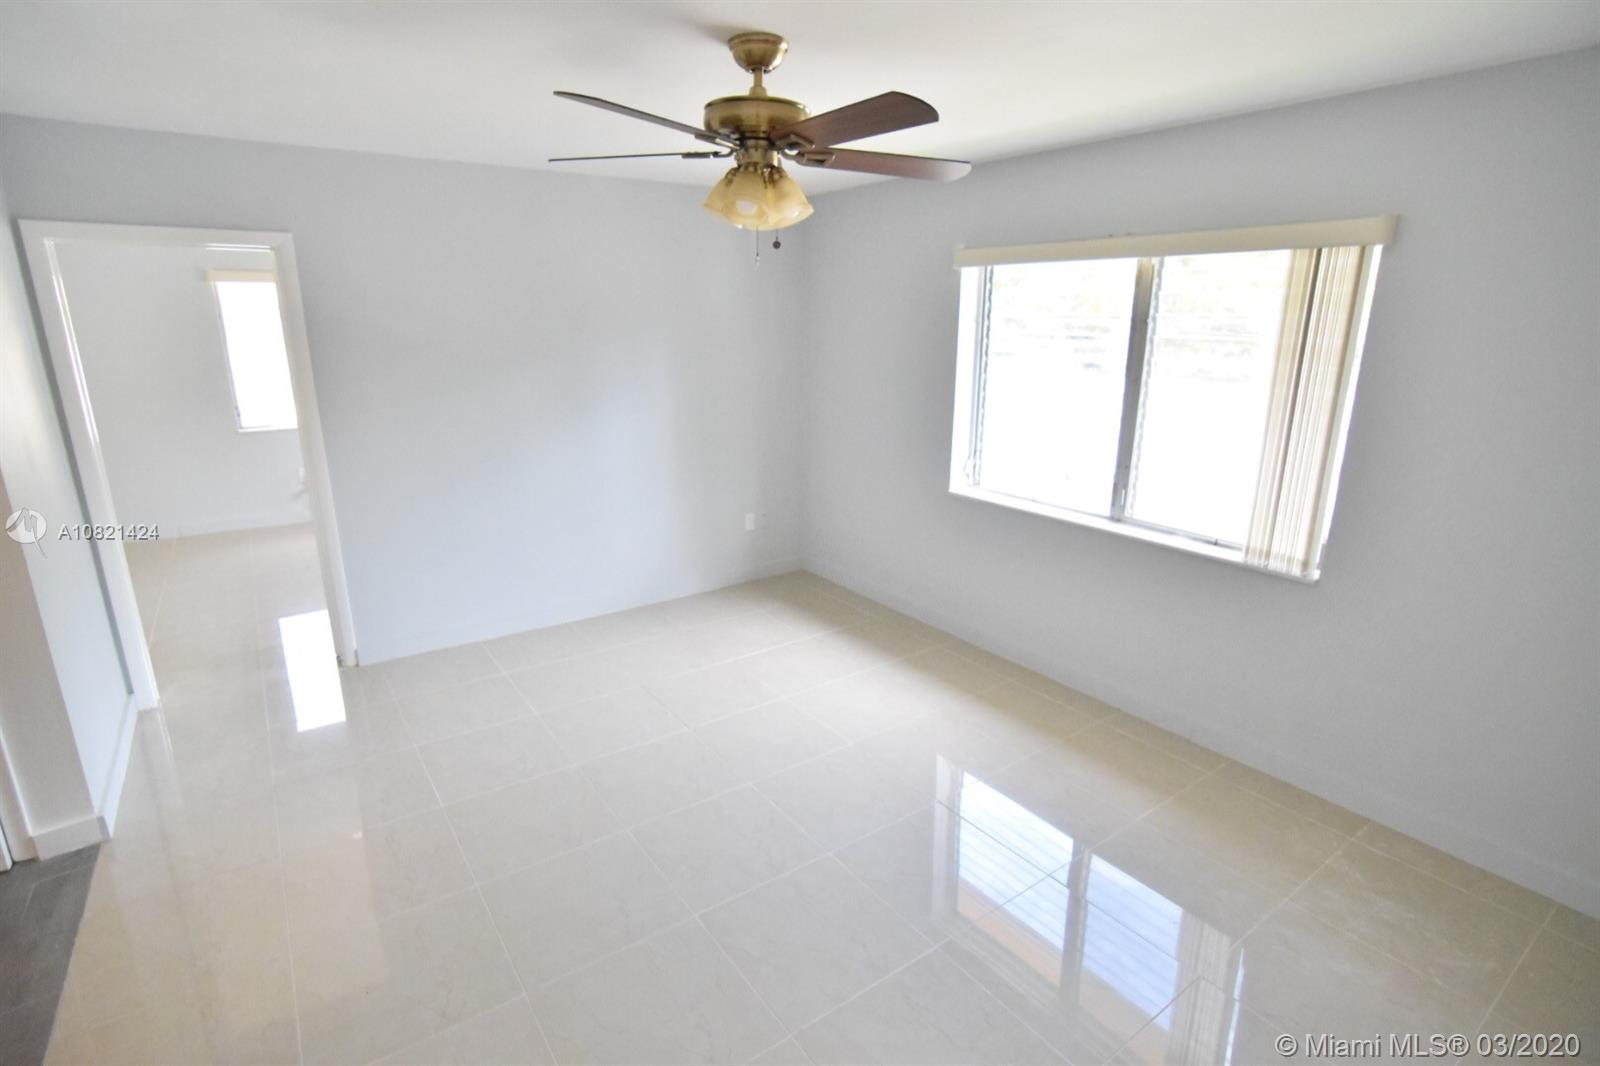 2615 SW 22nd Ave #17 For Sale A10821424, FL